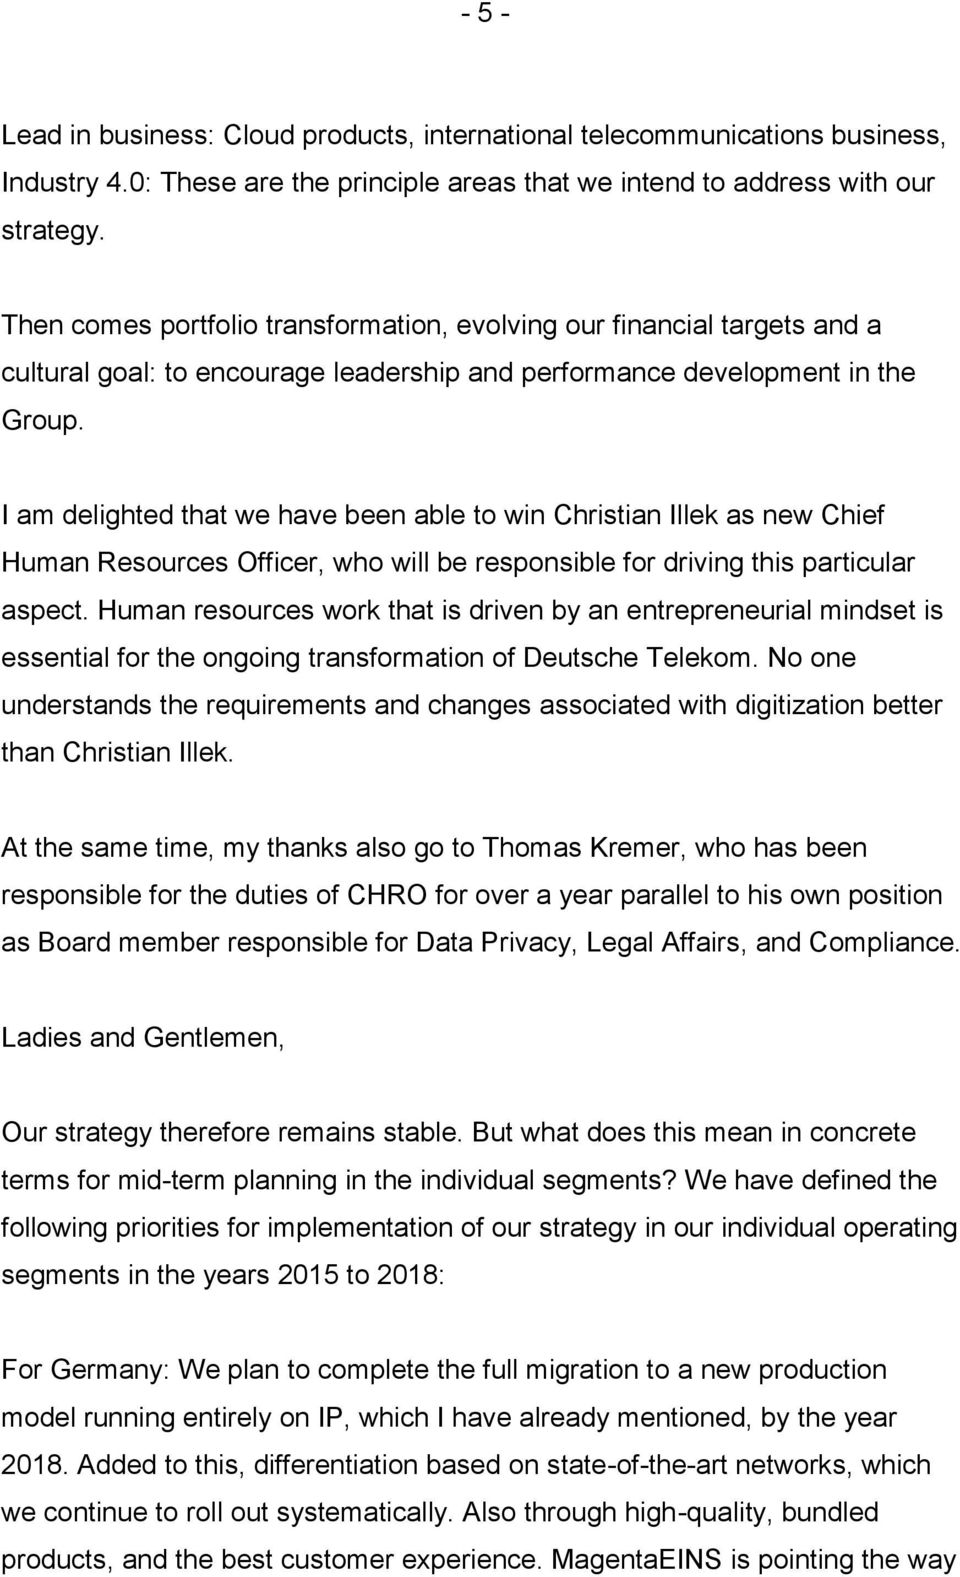 I am delighted that we have been able to win Christian Illek as new Chief Human Resources Officer, who will be responsible for driving this particular aspect.